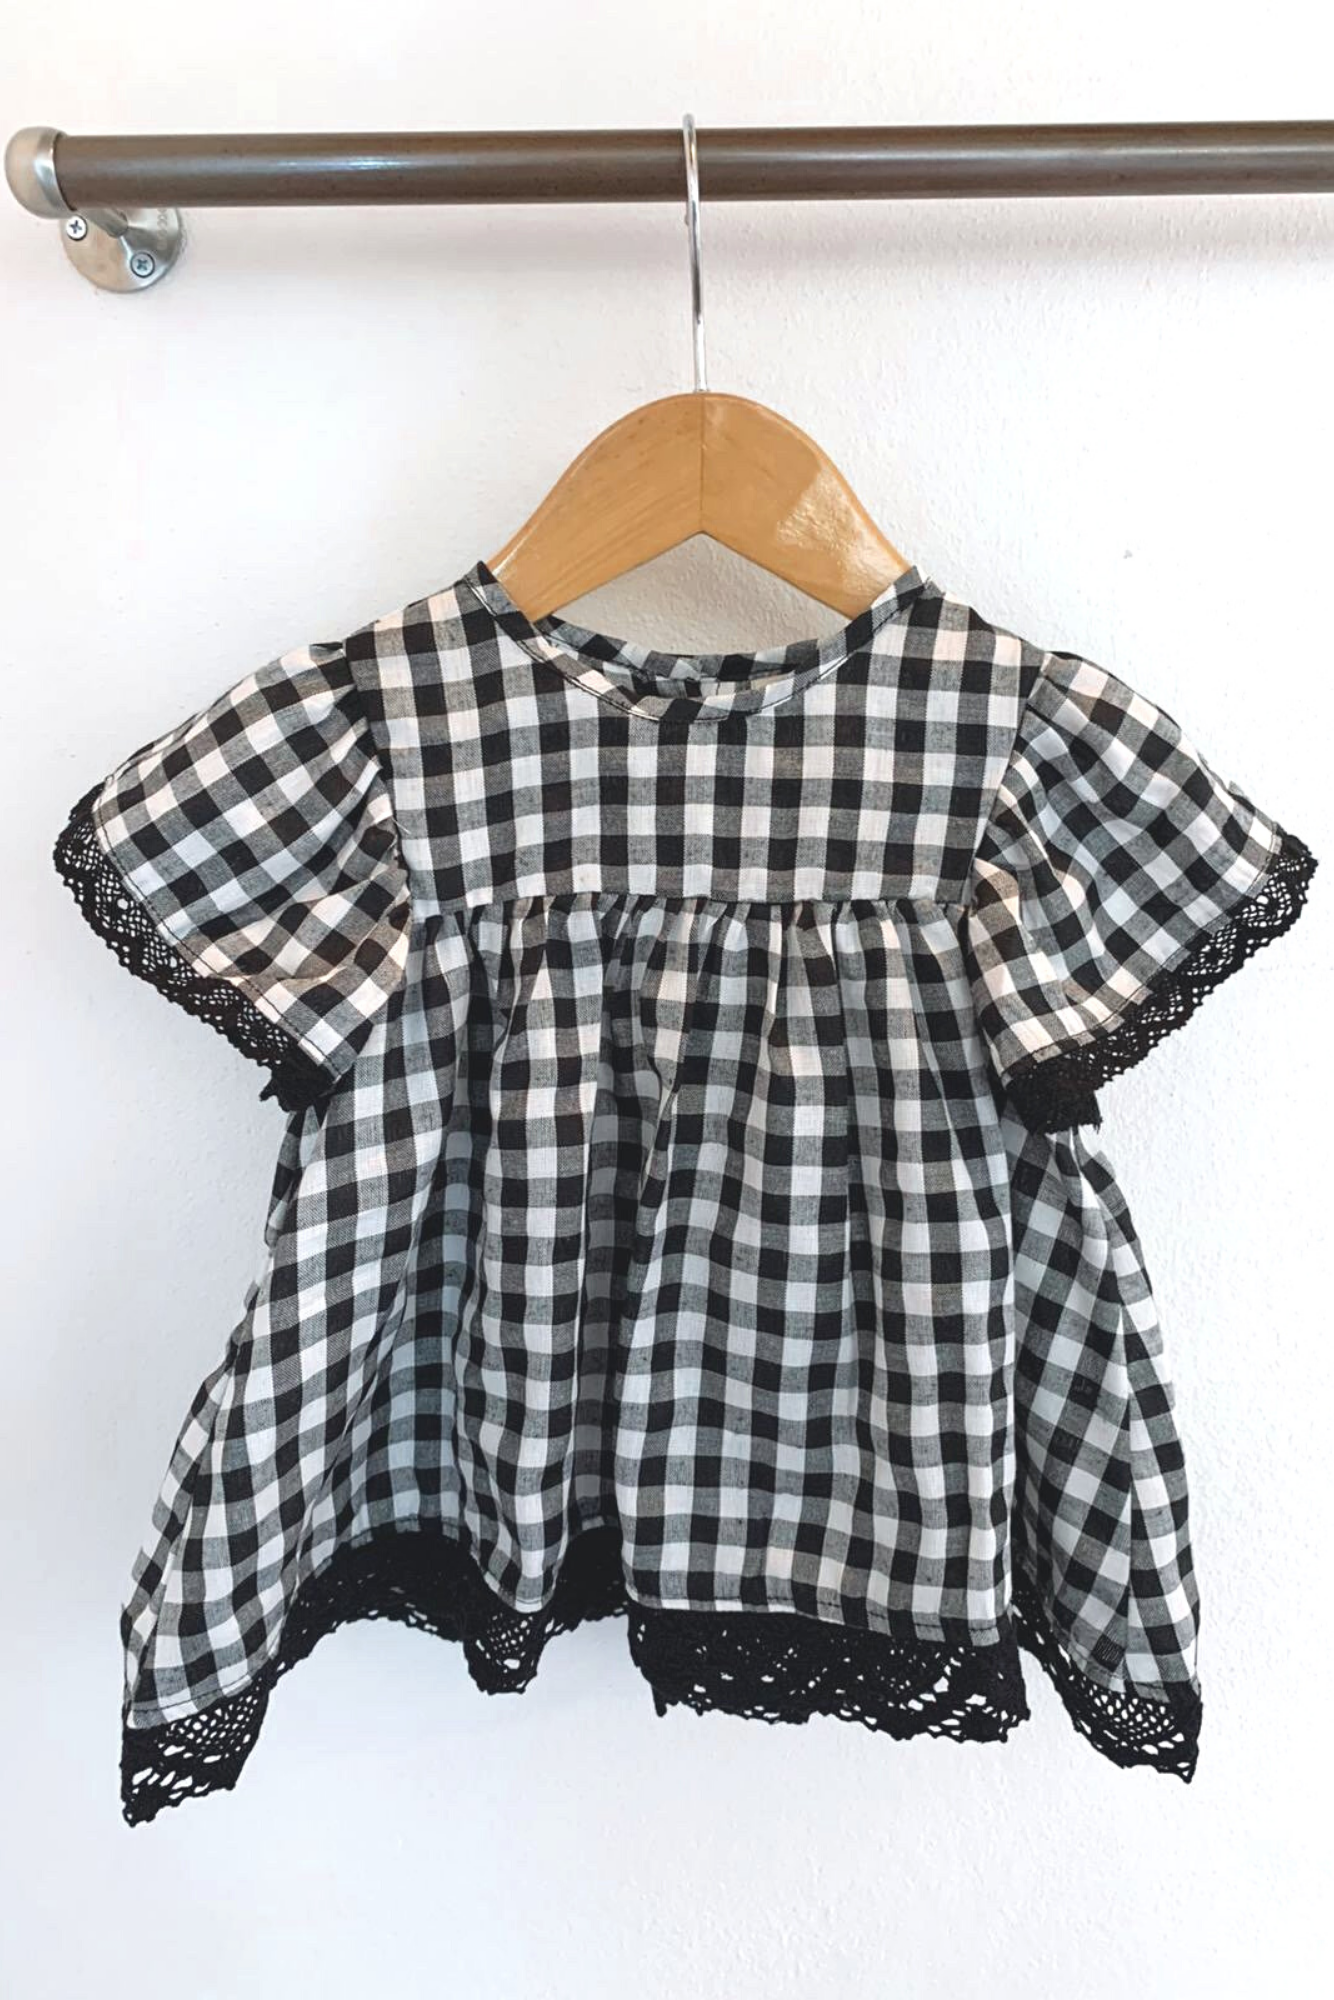 Cotton Baby Dress Gingham